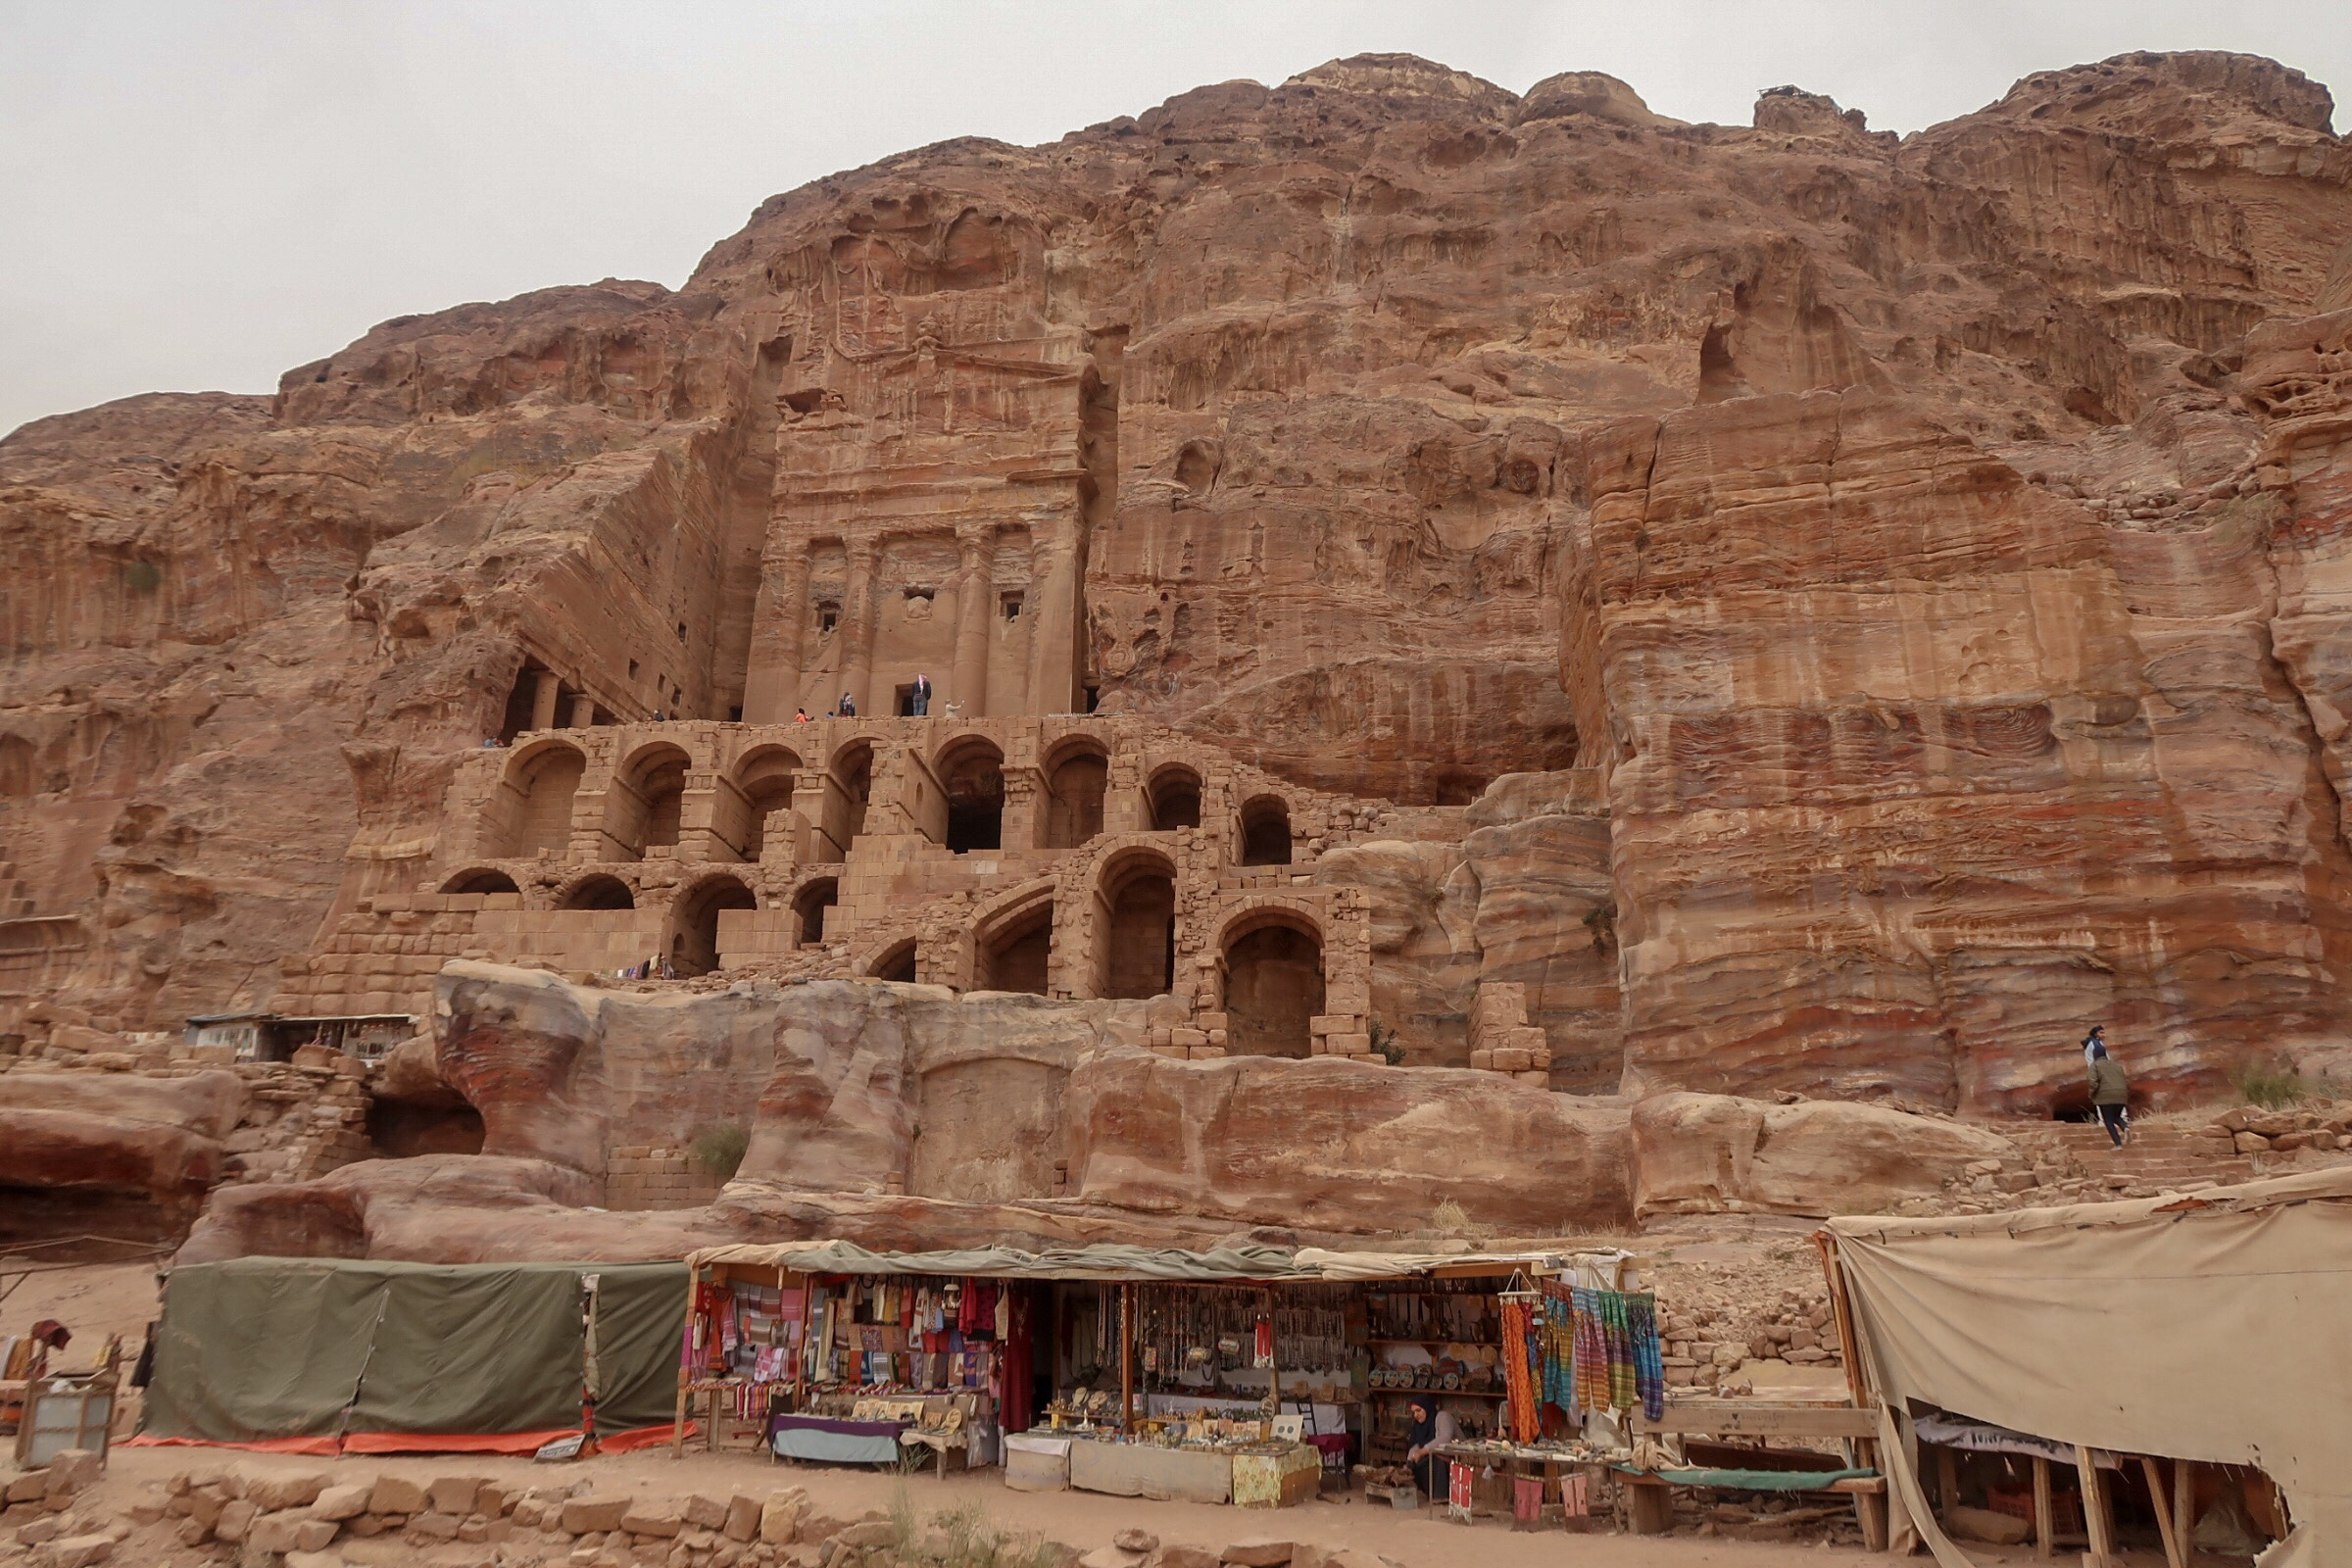 Some of the Royal Tombs above some little stalls set up at the side of the path